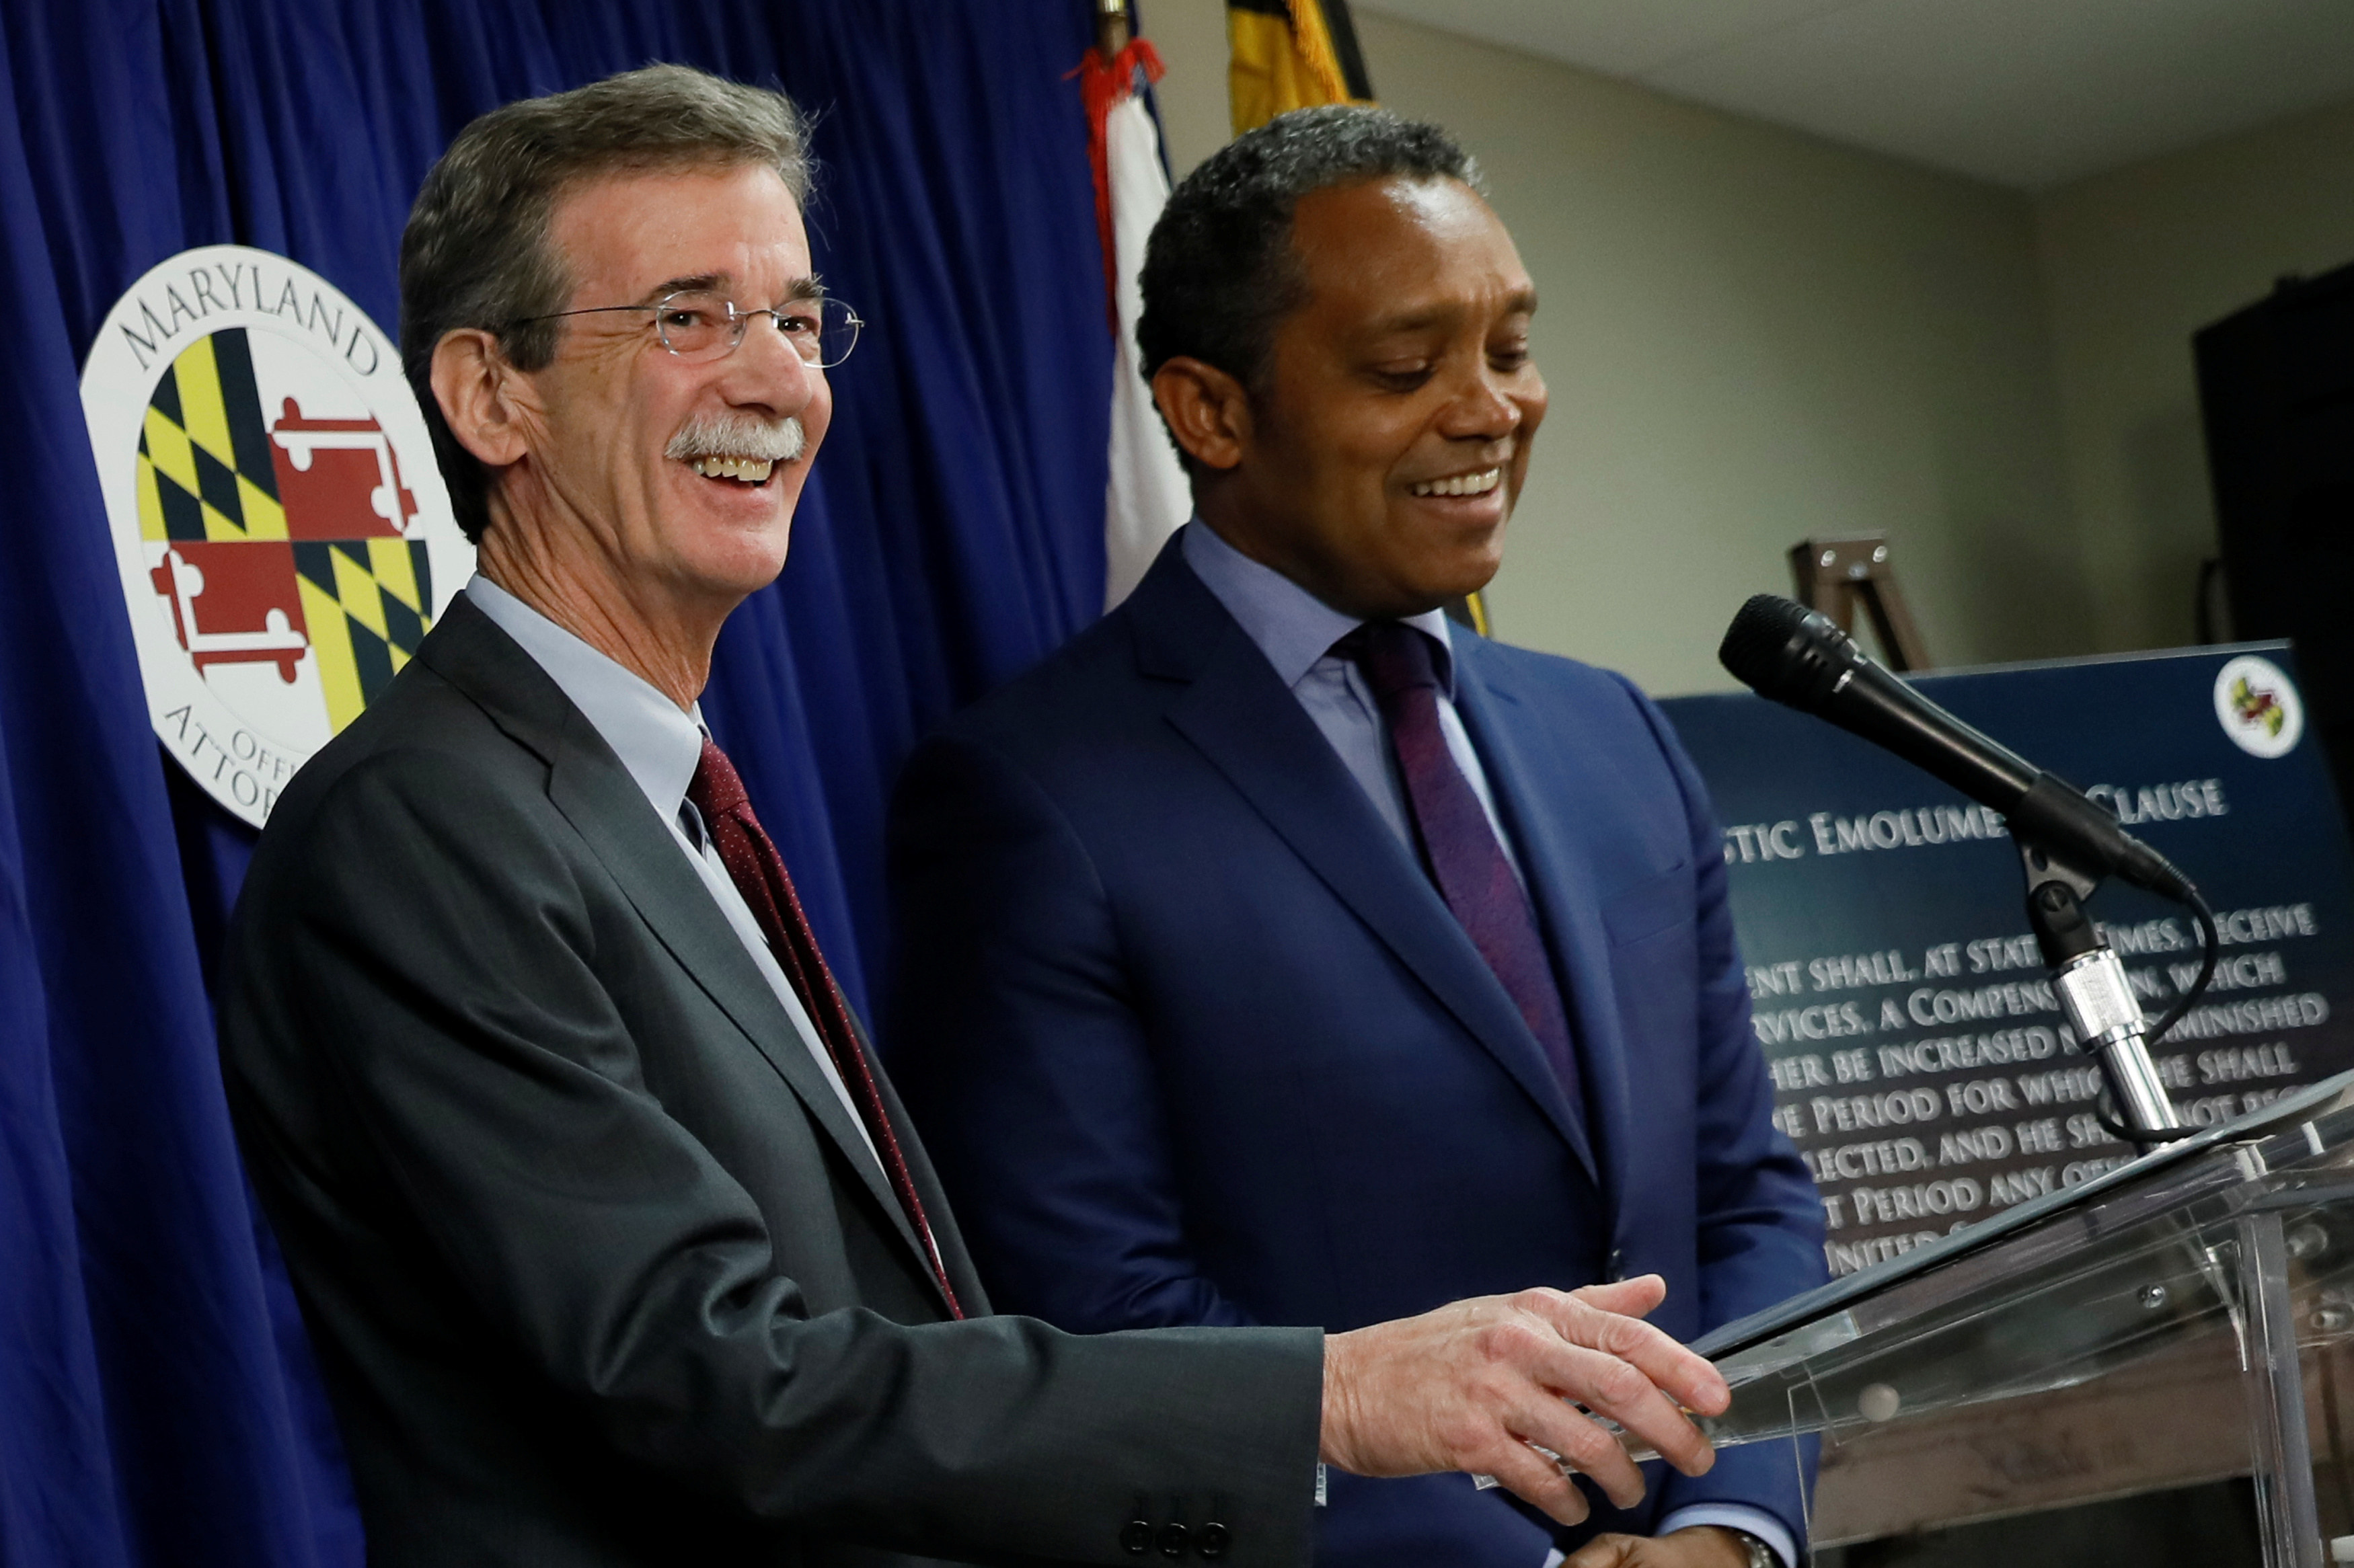 Maryland Attorney General Brian Frosh (L) and District of Columbia Attorney General Karl Racine hold a news conference to announce their lawsuit against U.S. President Donald Trump on the issue of the U.S. Constitution's emoluments clauses and Trump's business ventures, in Washington, DC, U.S. June 12, 2017. REUTERS/Jonathan Ernst